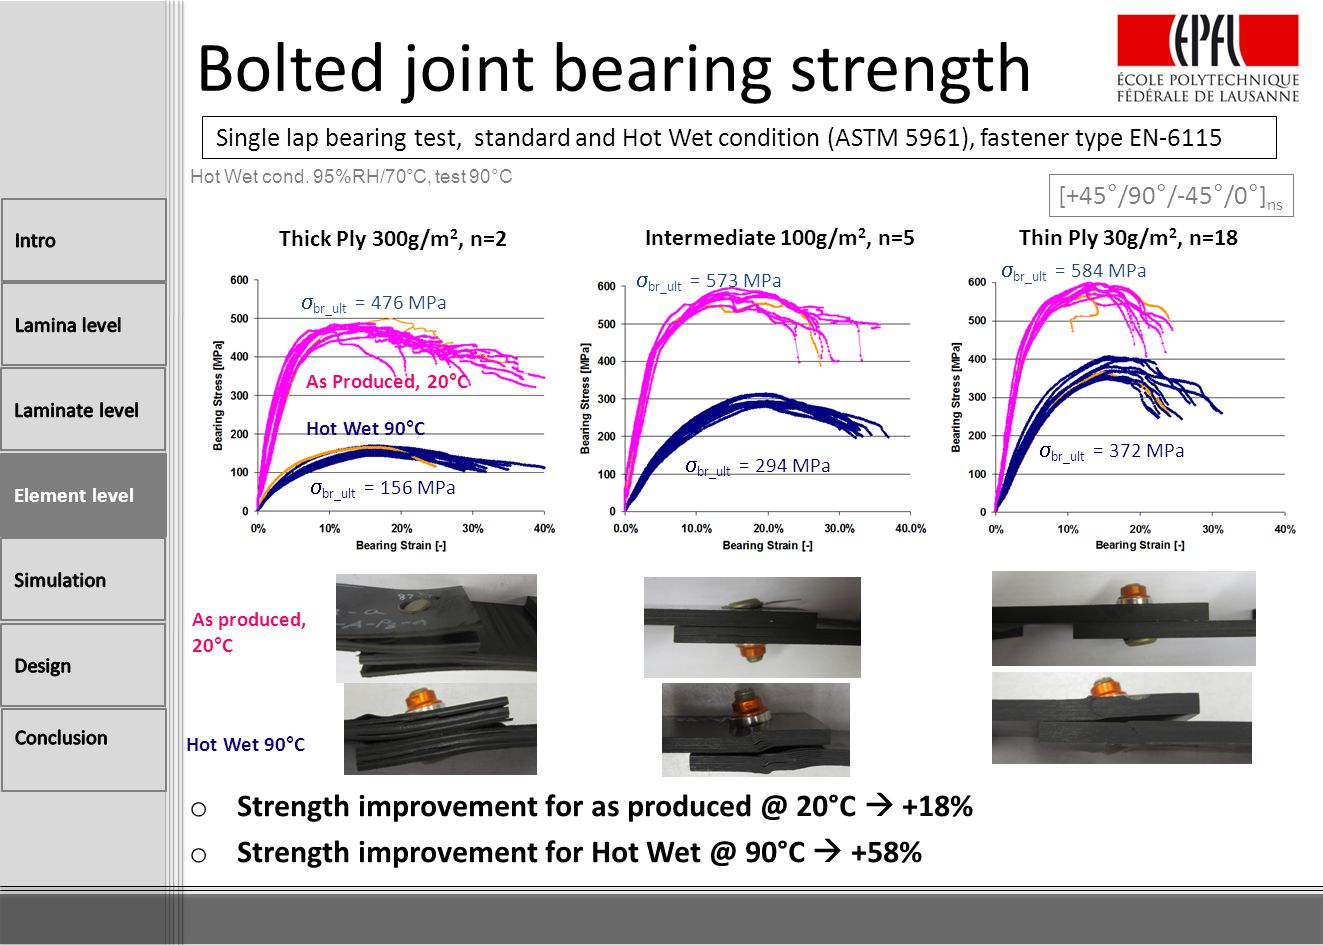 Bolted joint bearing strength o Strength improvement for as produced @ 20°C +18% o Strength improvement for Hot Wet @ 90°C +58% Single lap bearing tes